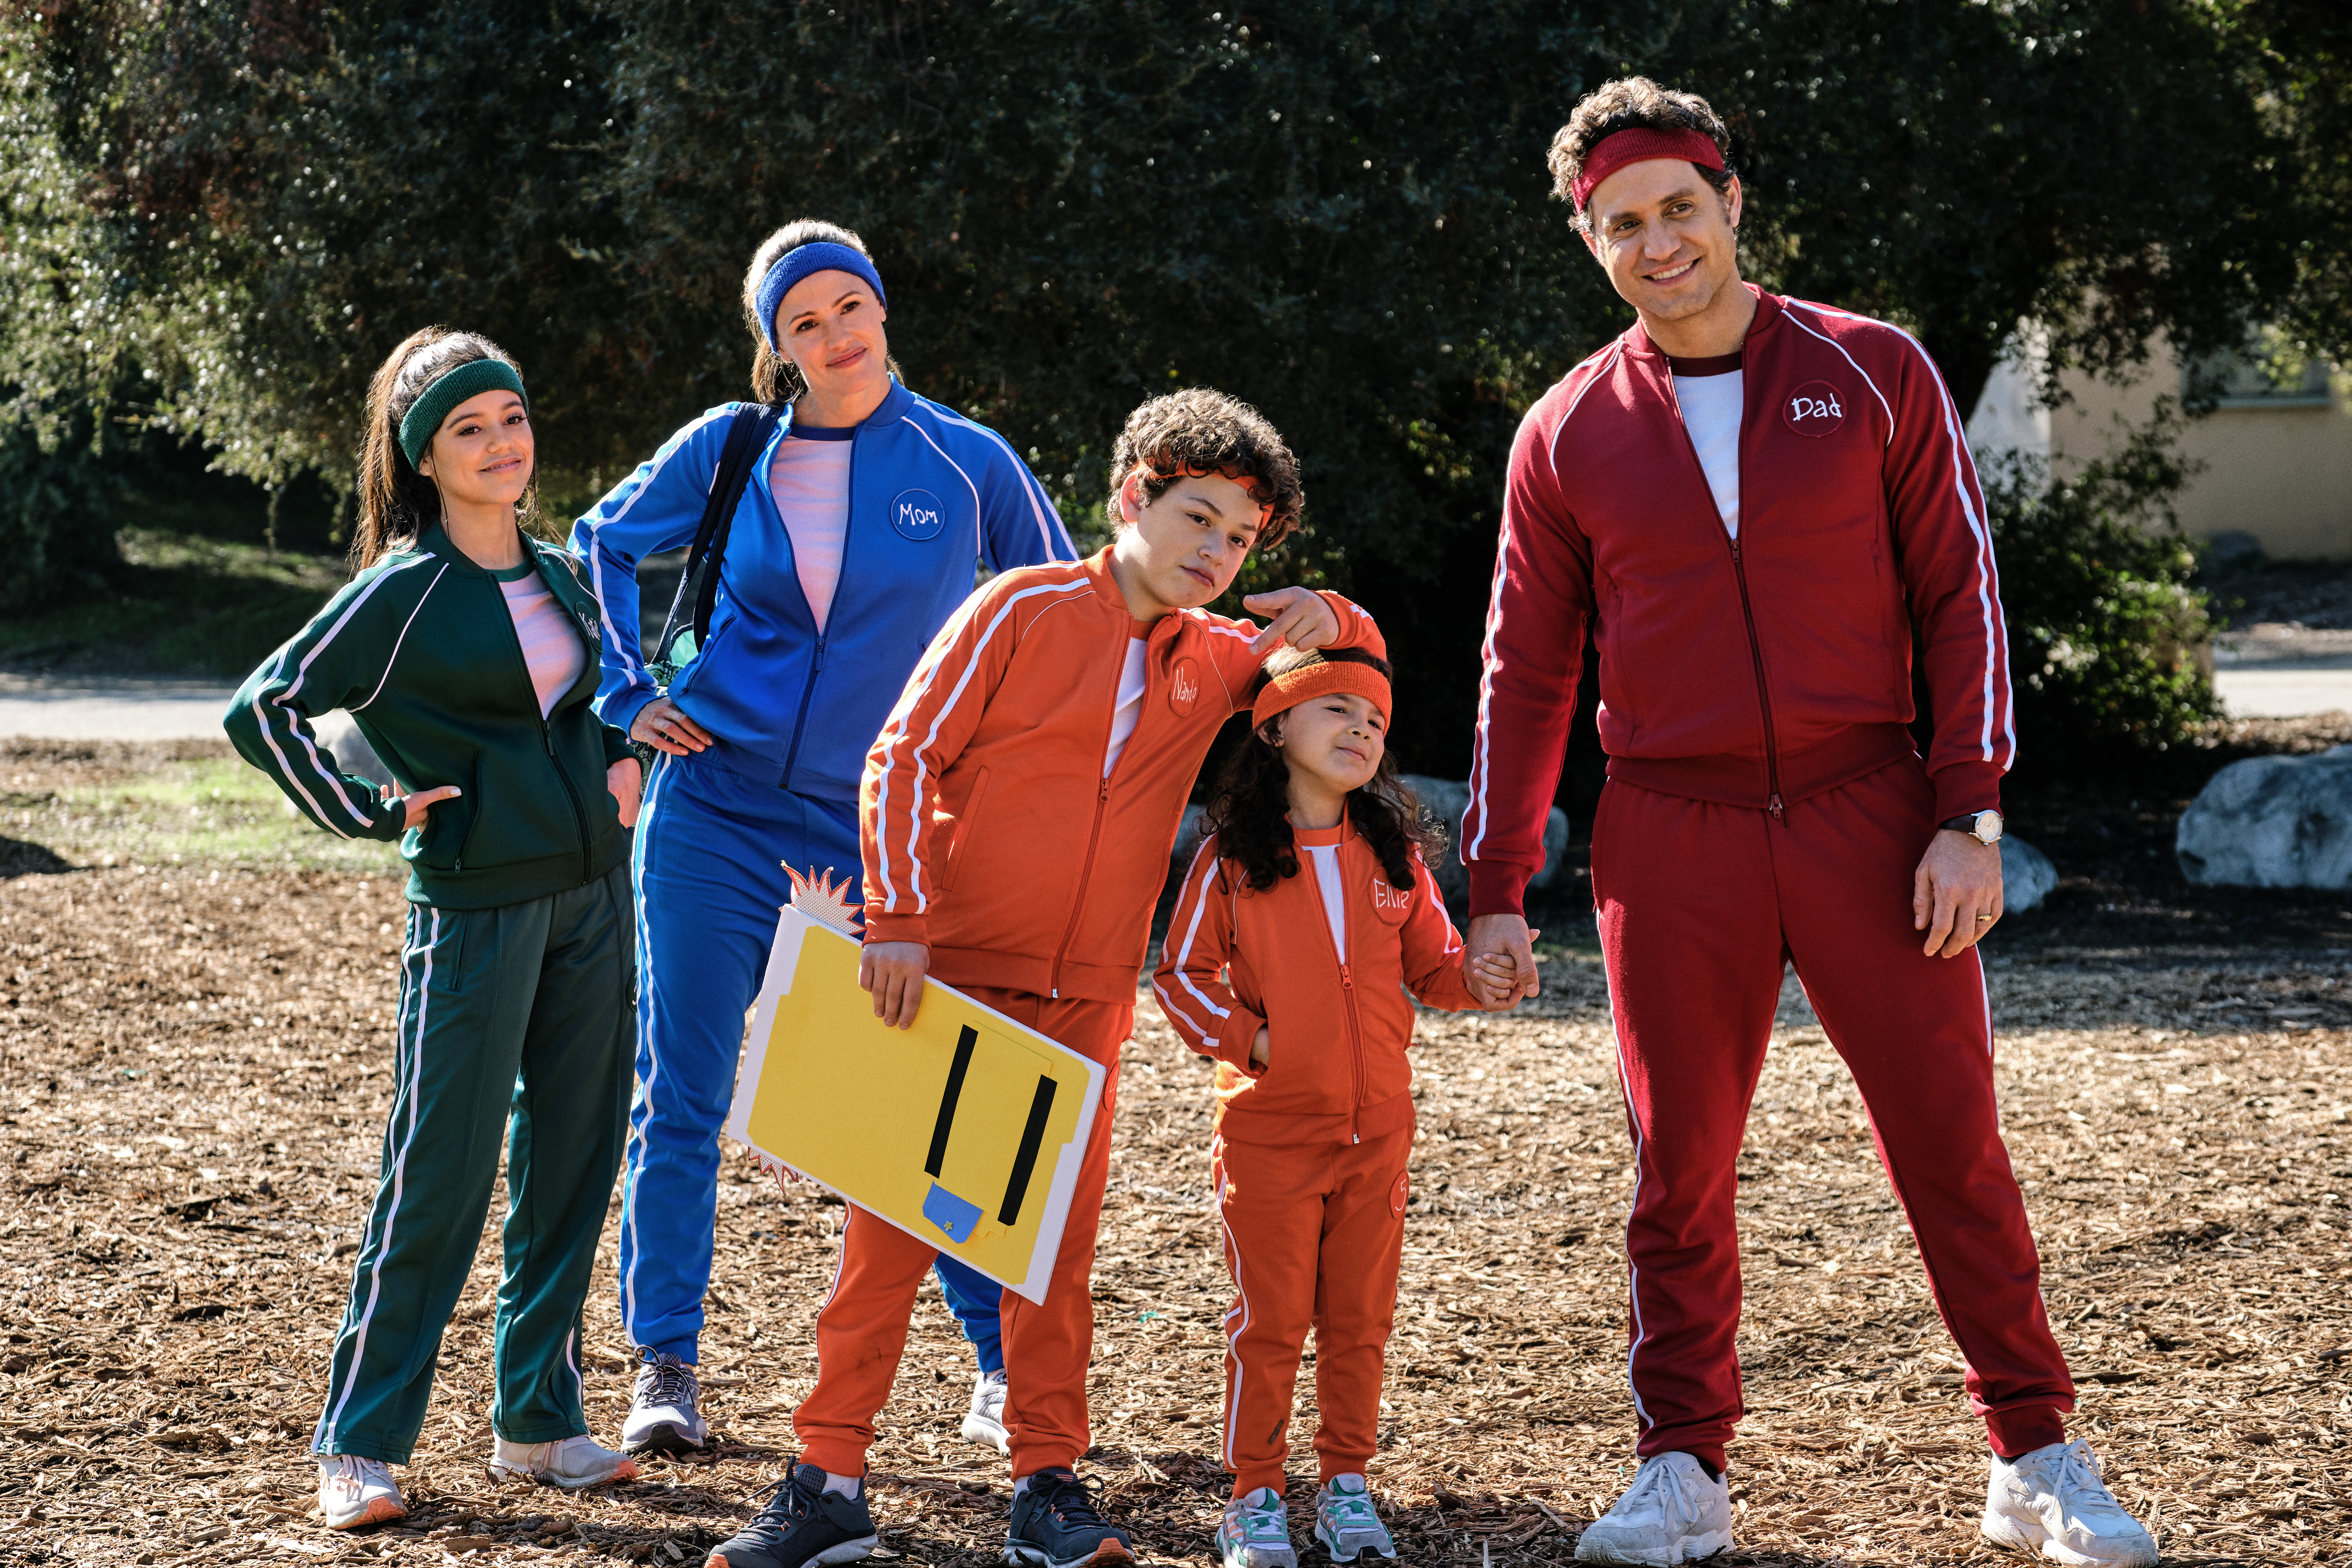 YES DAY: family in running clothes